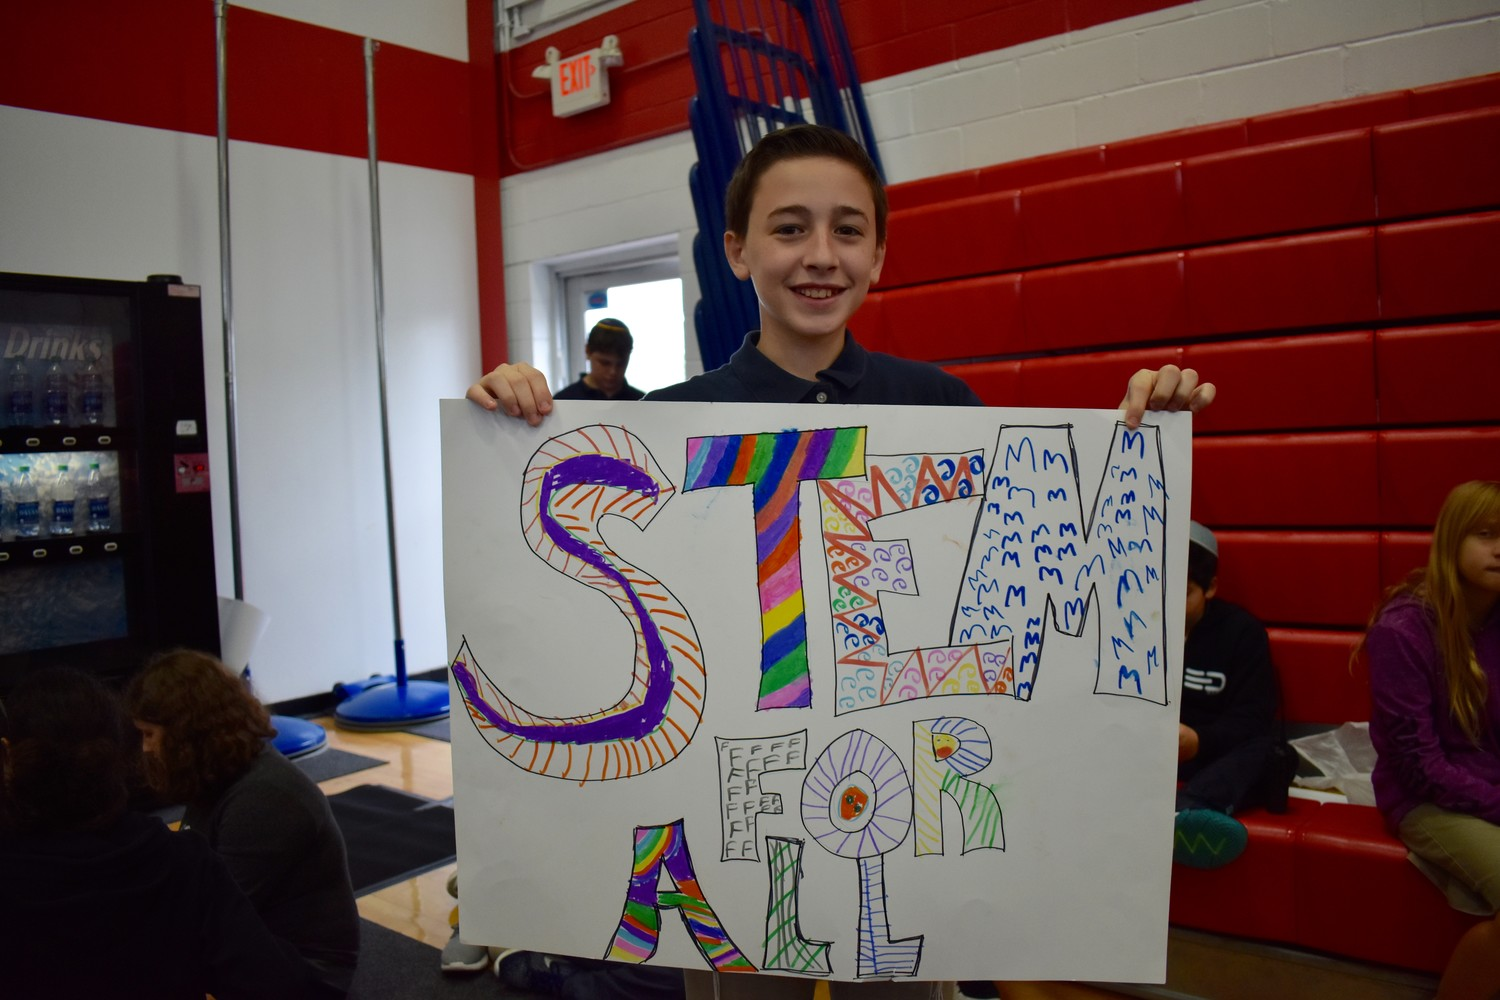 Joey Cohen, a sixth-grader at HAFTR Middle School, showed his enthusiasm for STEM education.